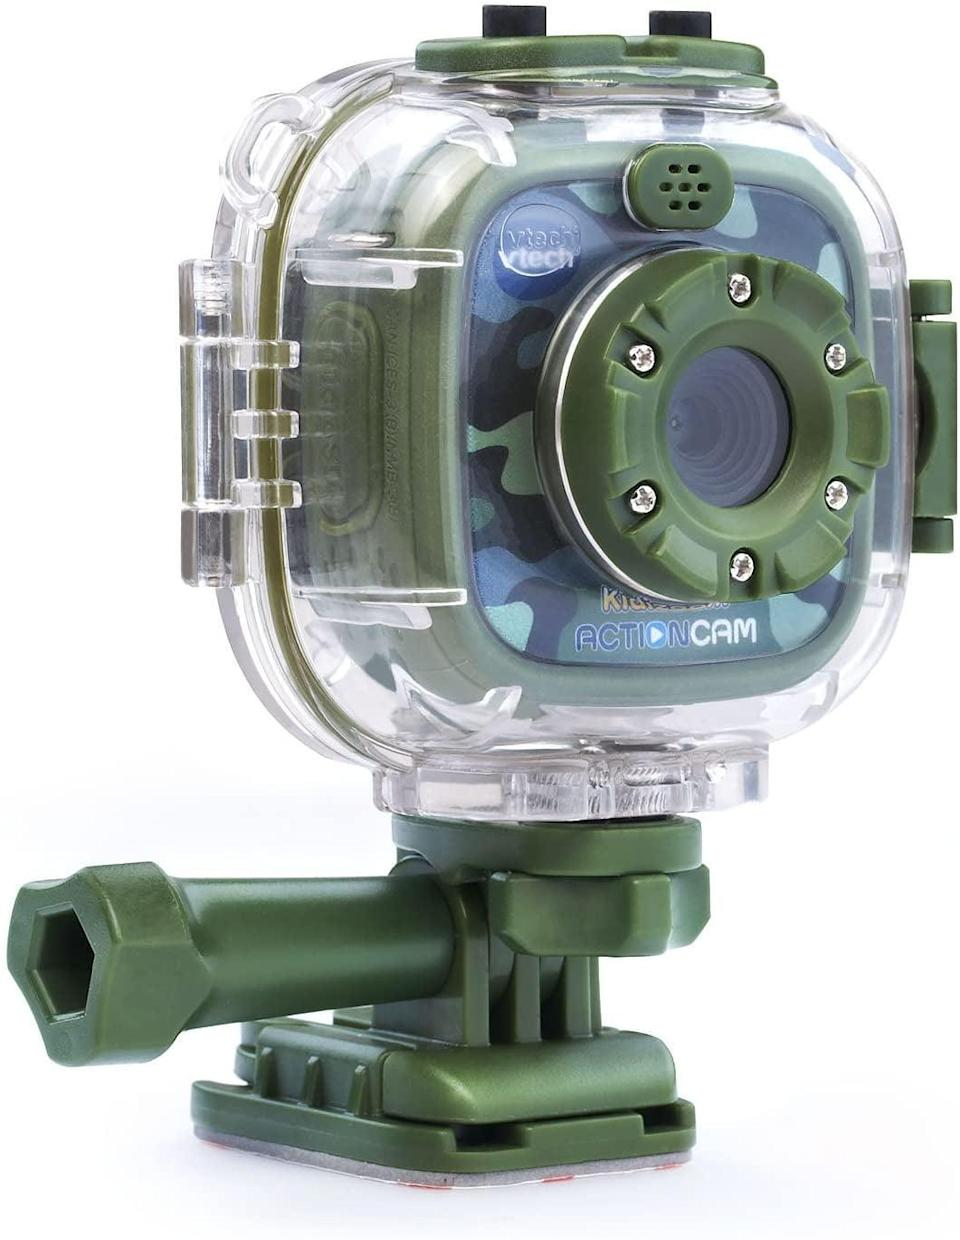 <p><span>VTech Kidizoom Action Cam</span> ($45, originally $50) comes with a camera that can attach to a scooter, bike, or helmet. It's basically a kid-friendly Go-Pro!</p>